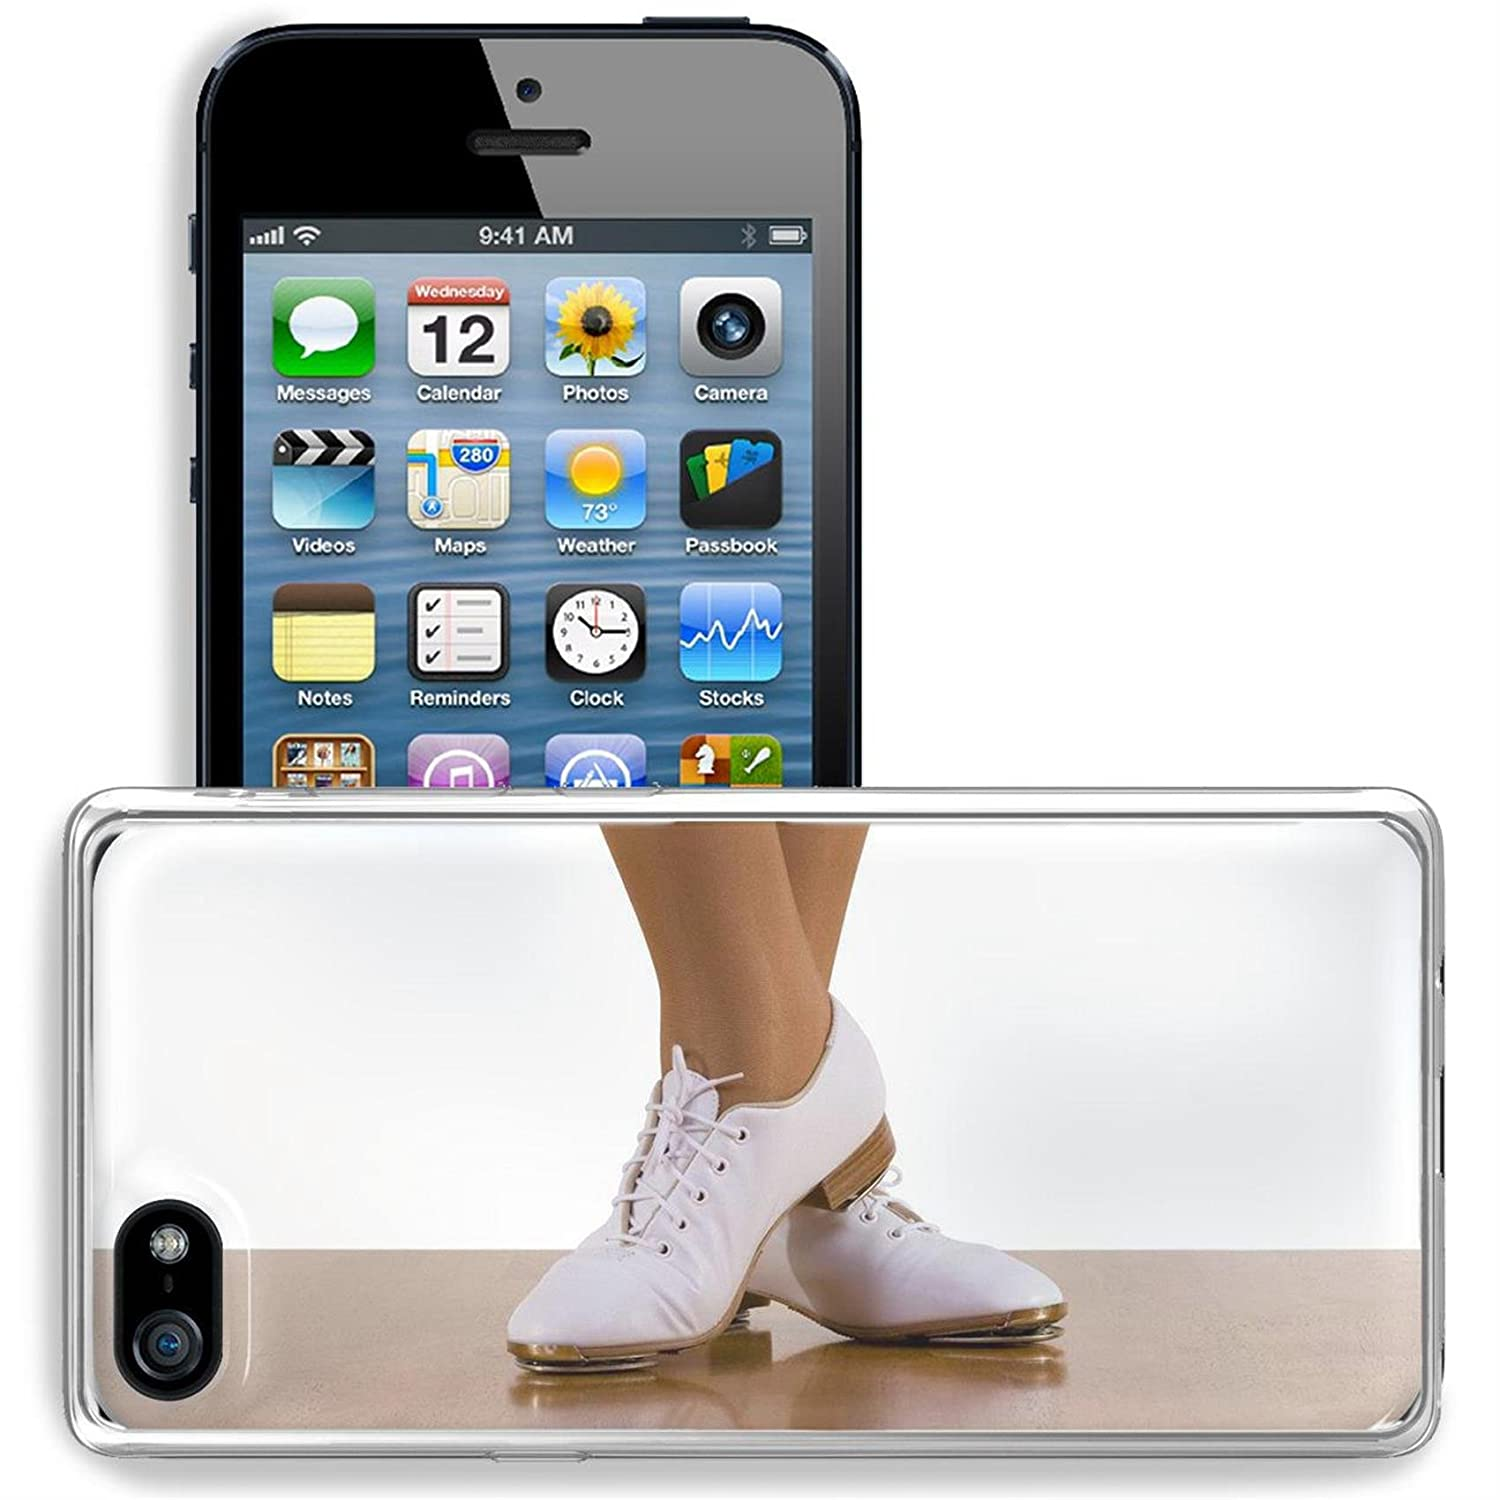 c906ec44 Luxlady Apple iPhone 5/5S Clear case Soft TPU Rubber Silicone Bumper Snap  Cases iPhone5/5S IMAGE ID 2480929 Tap top Clog dancer in clogging shoes on  white